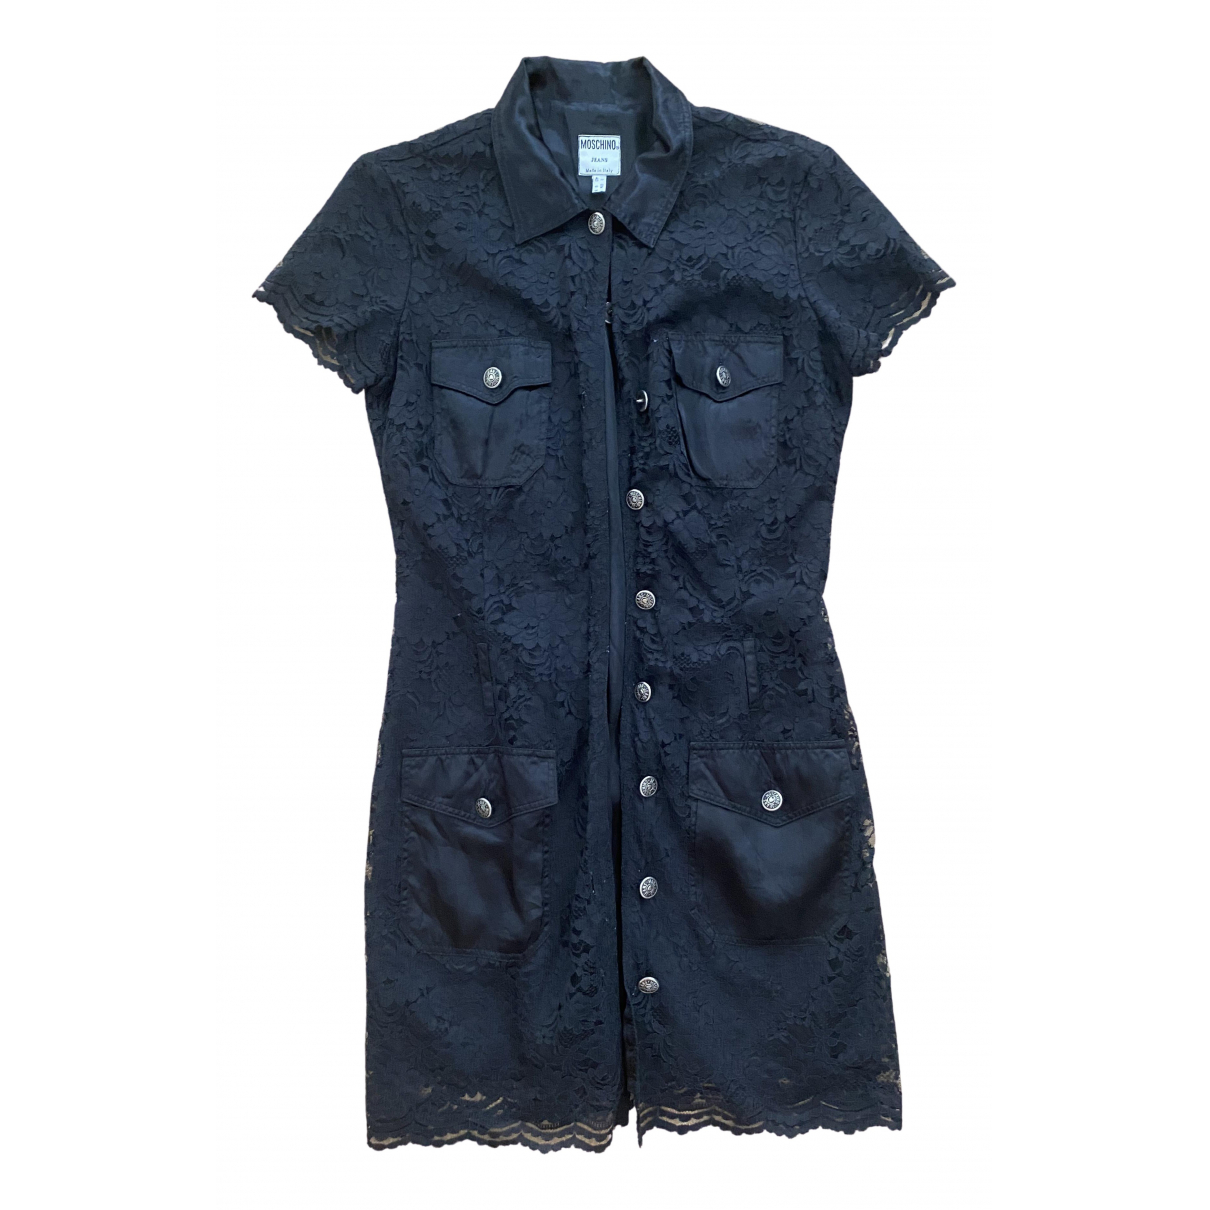 Moschino Cheap And Chic \N Black Cotton dress for Women 42 IT